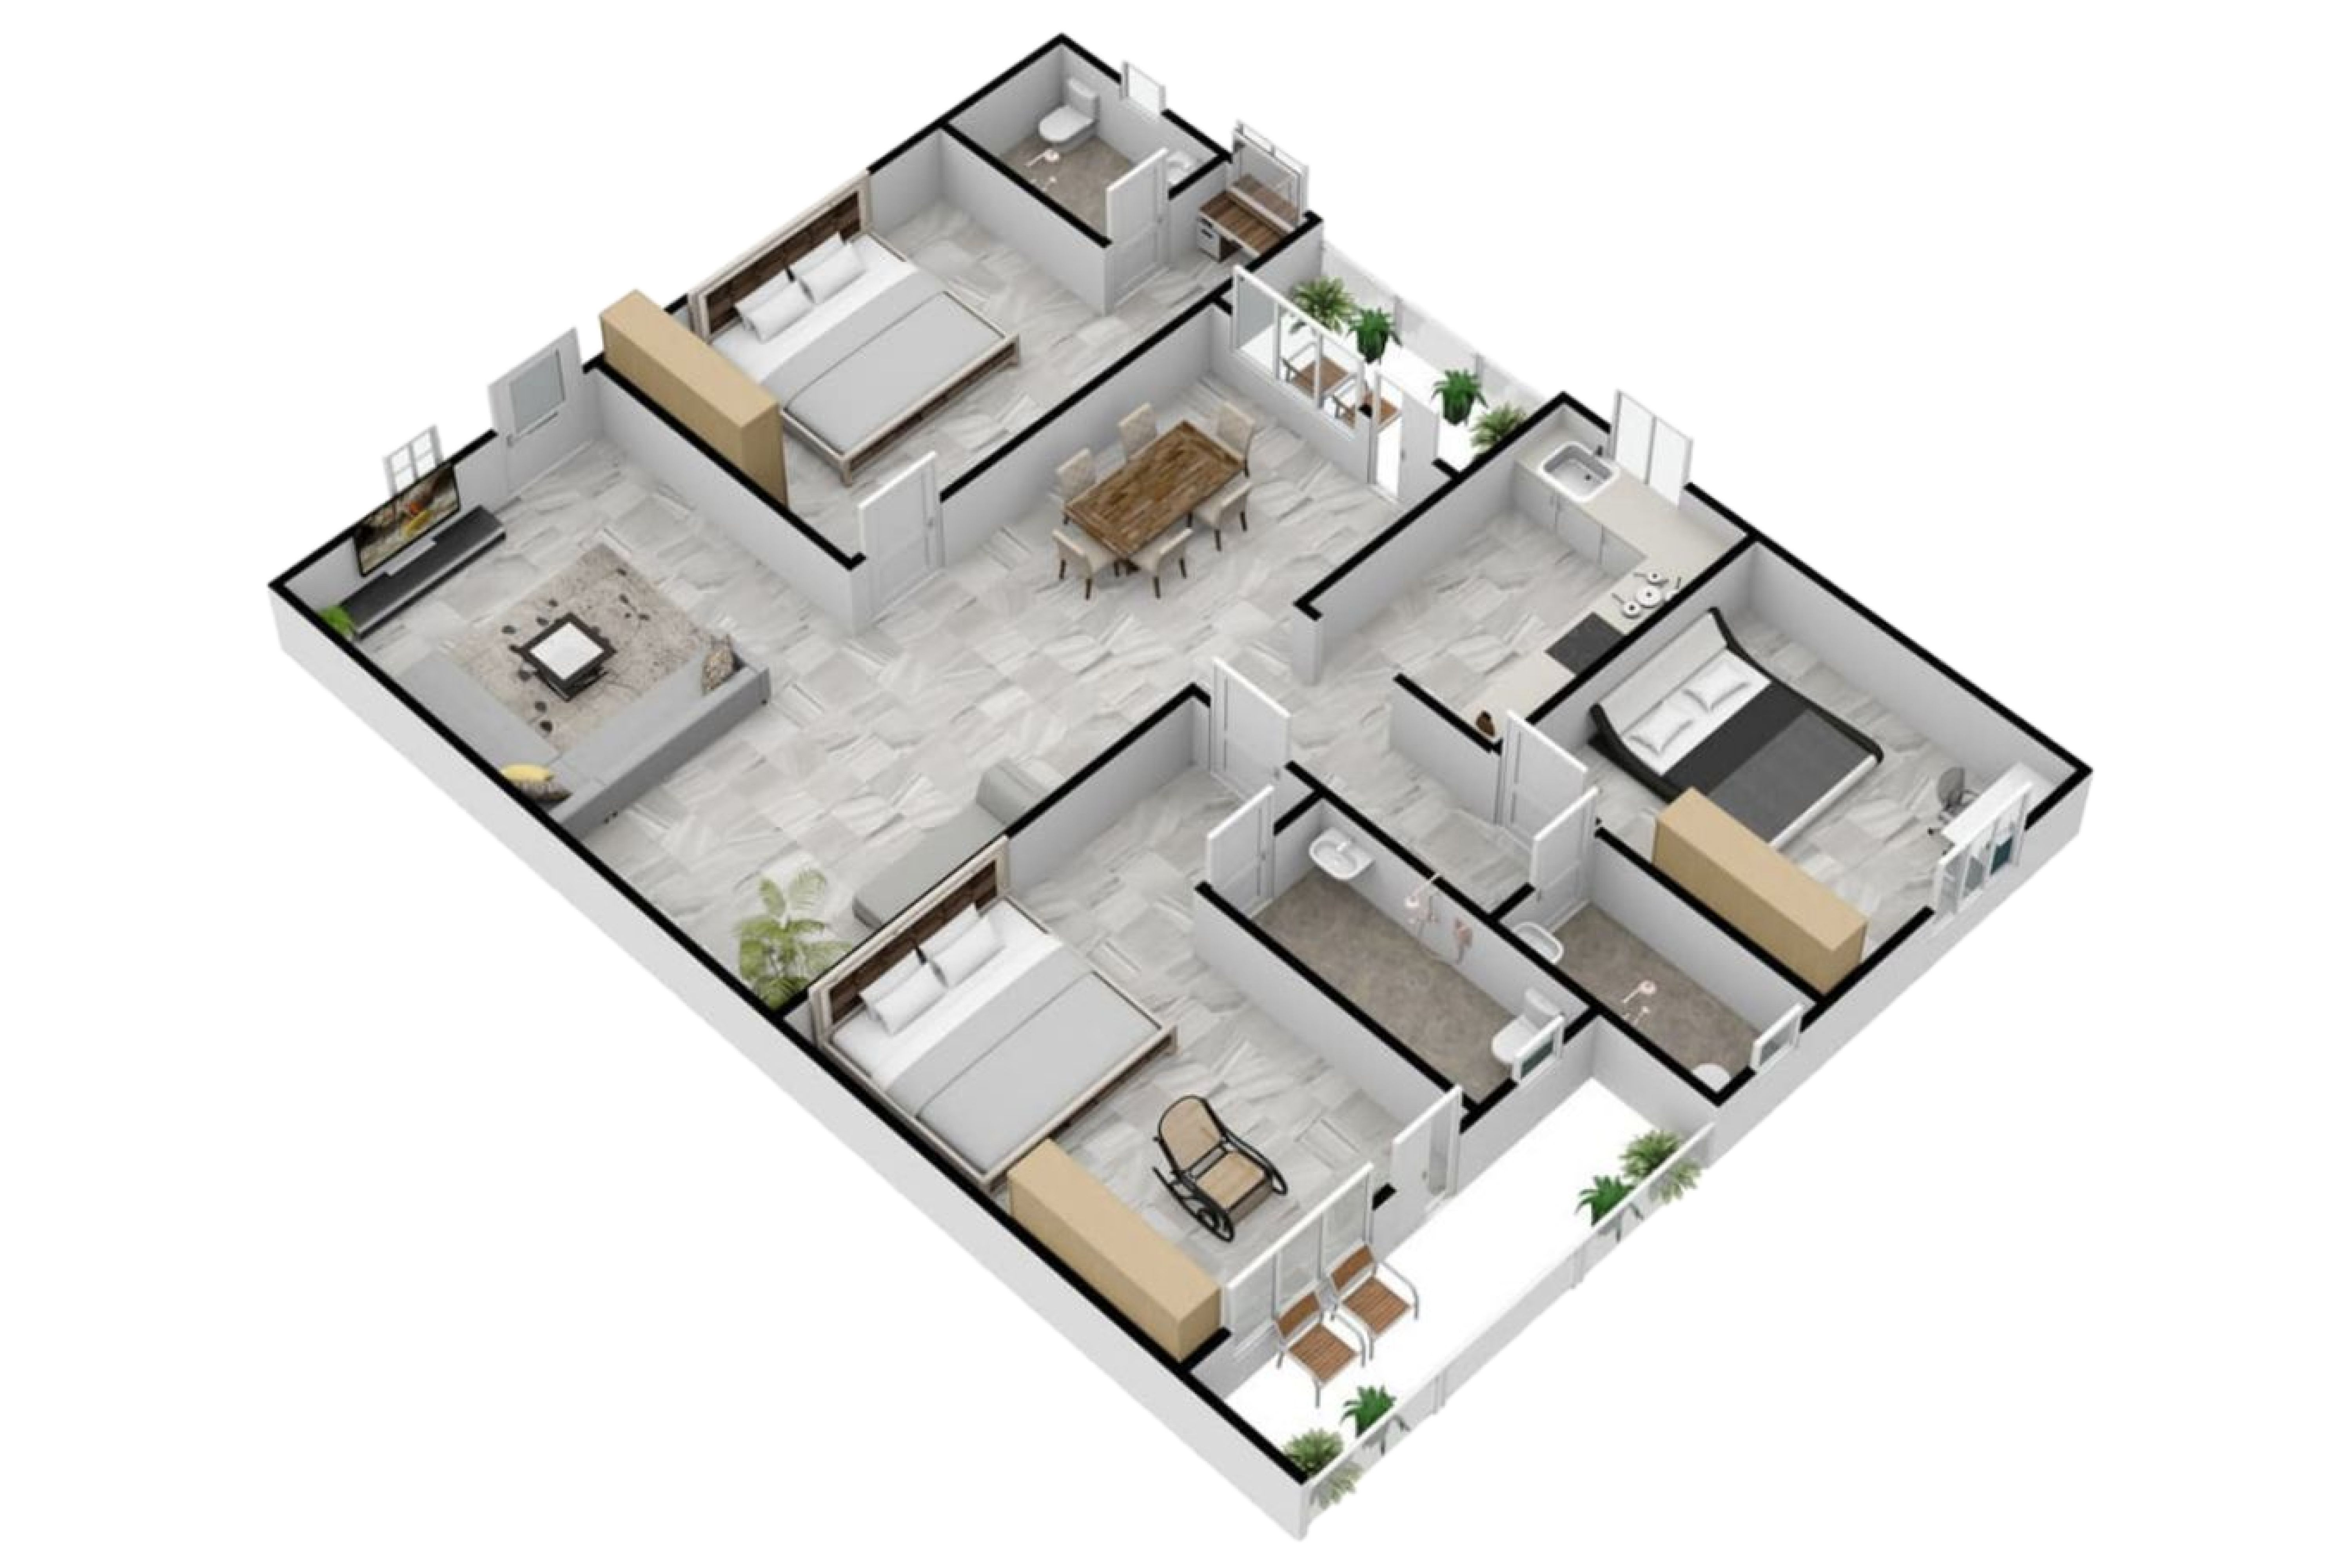 Create Floorplans In 2d 3d With Easy Create Your Free Account Today At Floorplanner Com Sims House Design Floor Plans Create Floor Plan